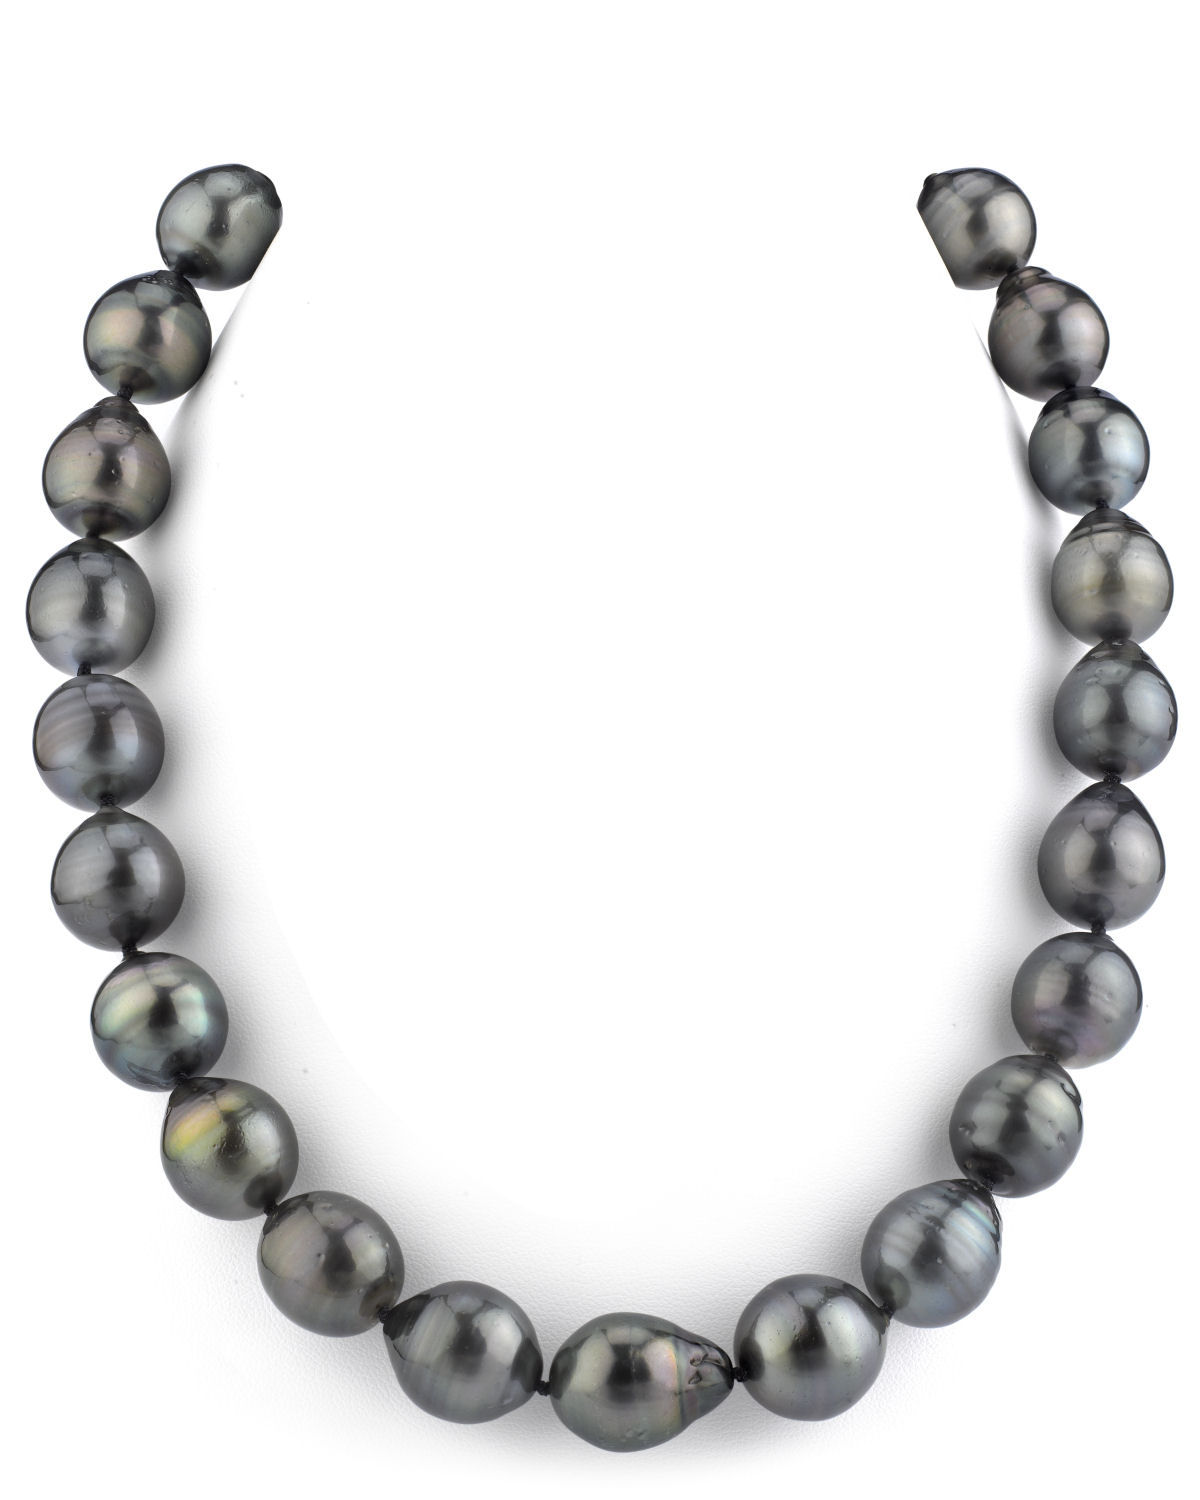 14-15.7mm Tahitian South Sea Multicolor Drop-Shape Pearl Necklace